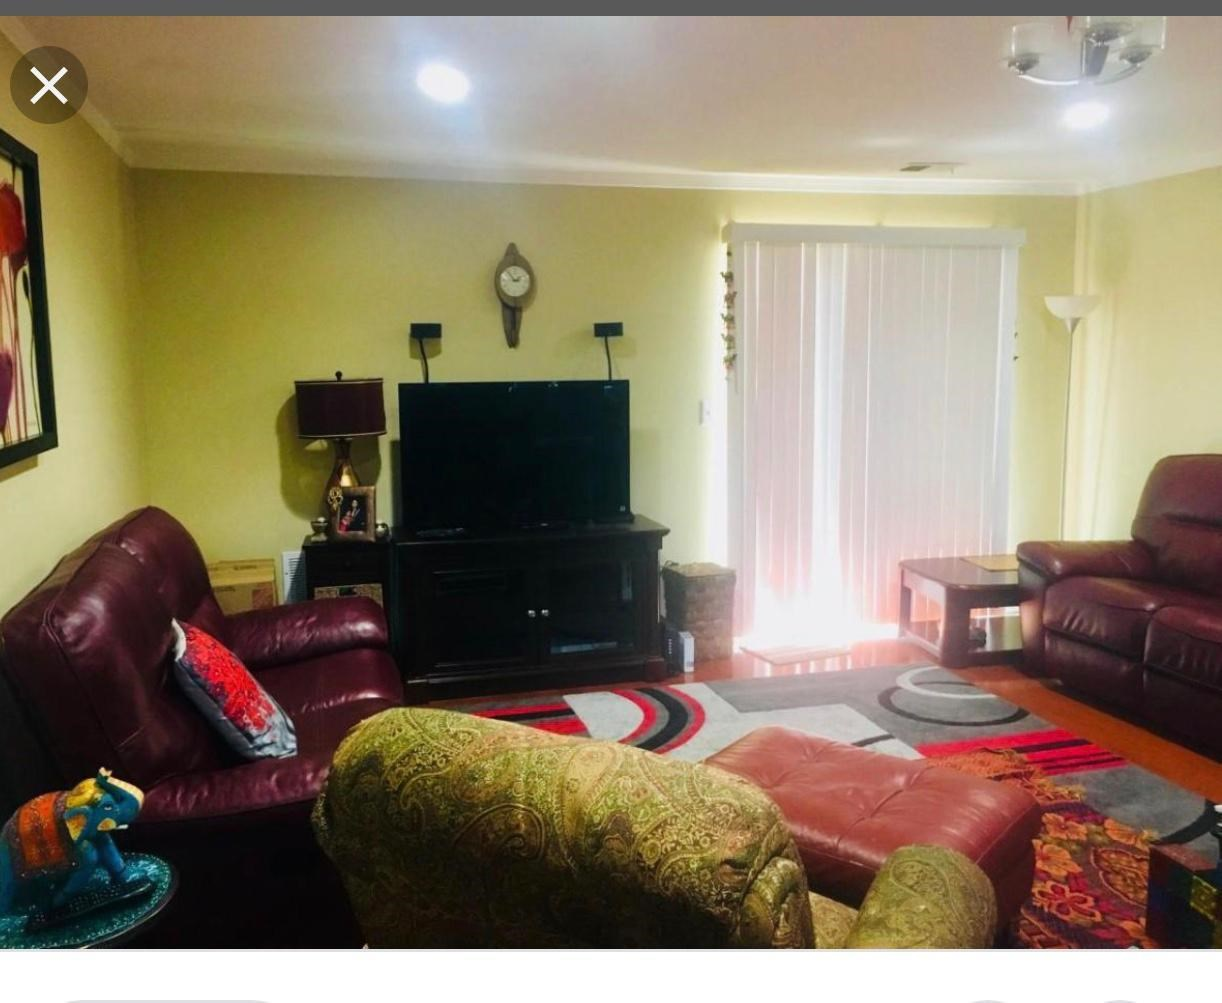 Apartment Available Near Metro Park | 3 BHK Condo in Iselin, NJ | 1217919 -  Sulekha Rentals